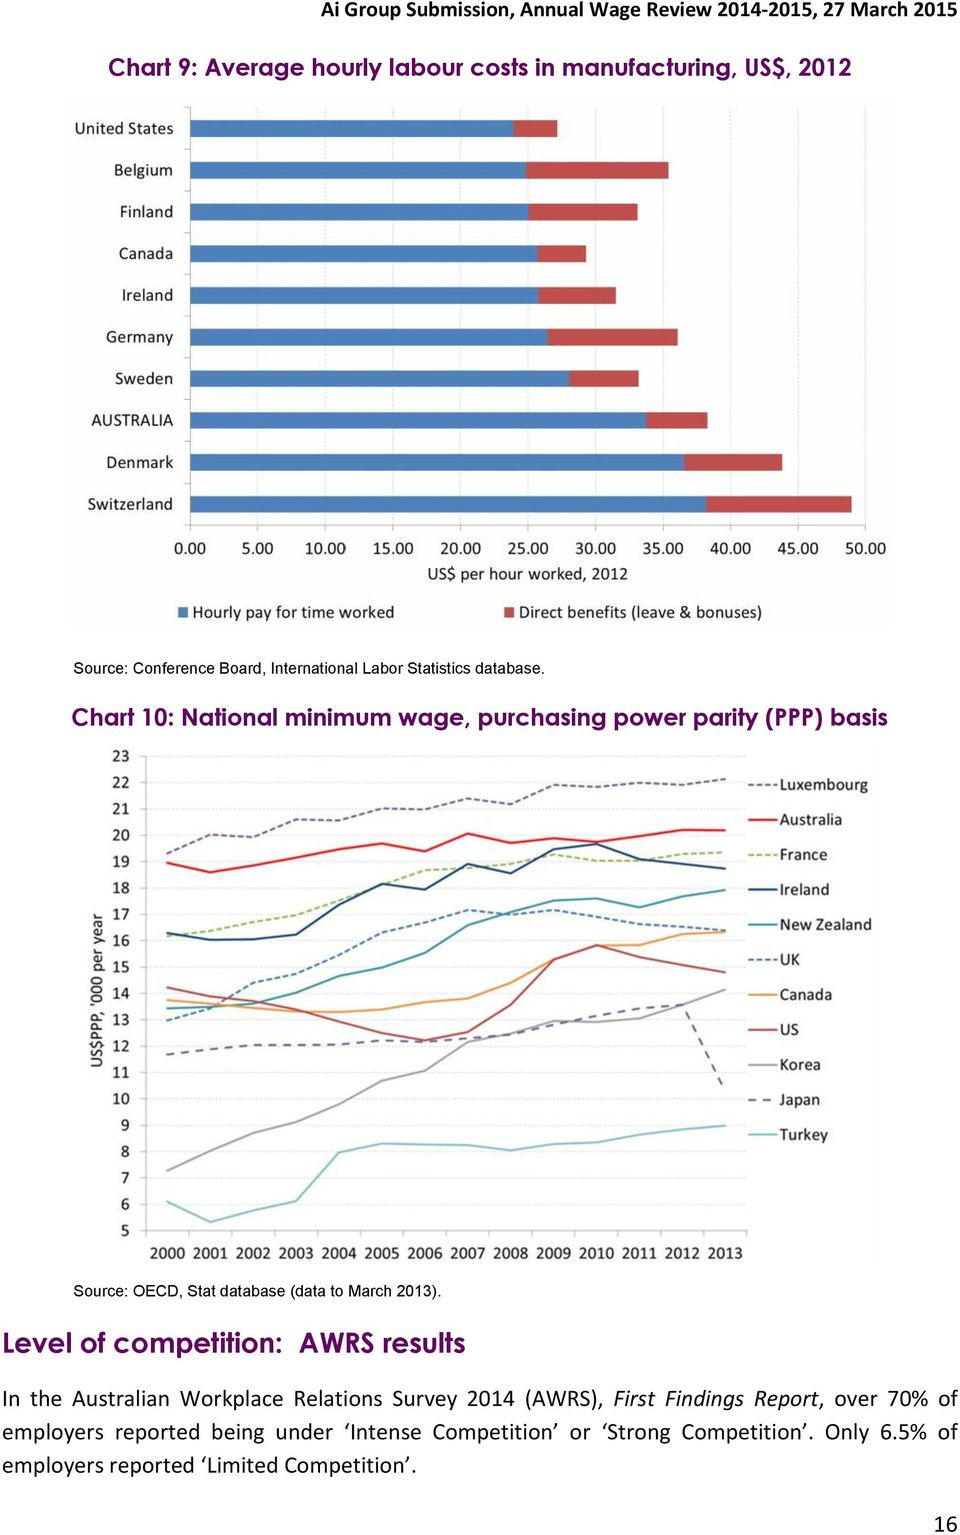 Chart 10: National minimum wage, purchasing power parity (PPP) basis Source: OECD, Stat database (data to March 2013).